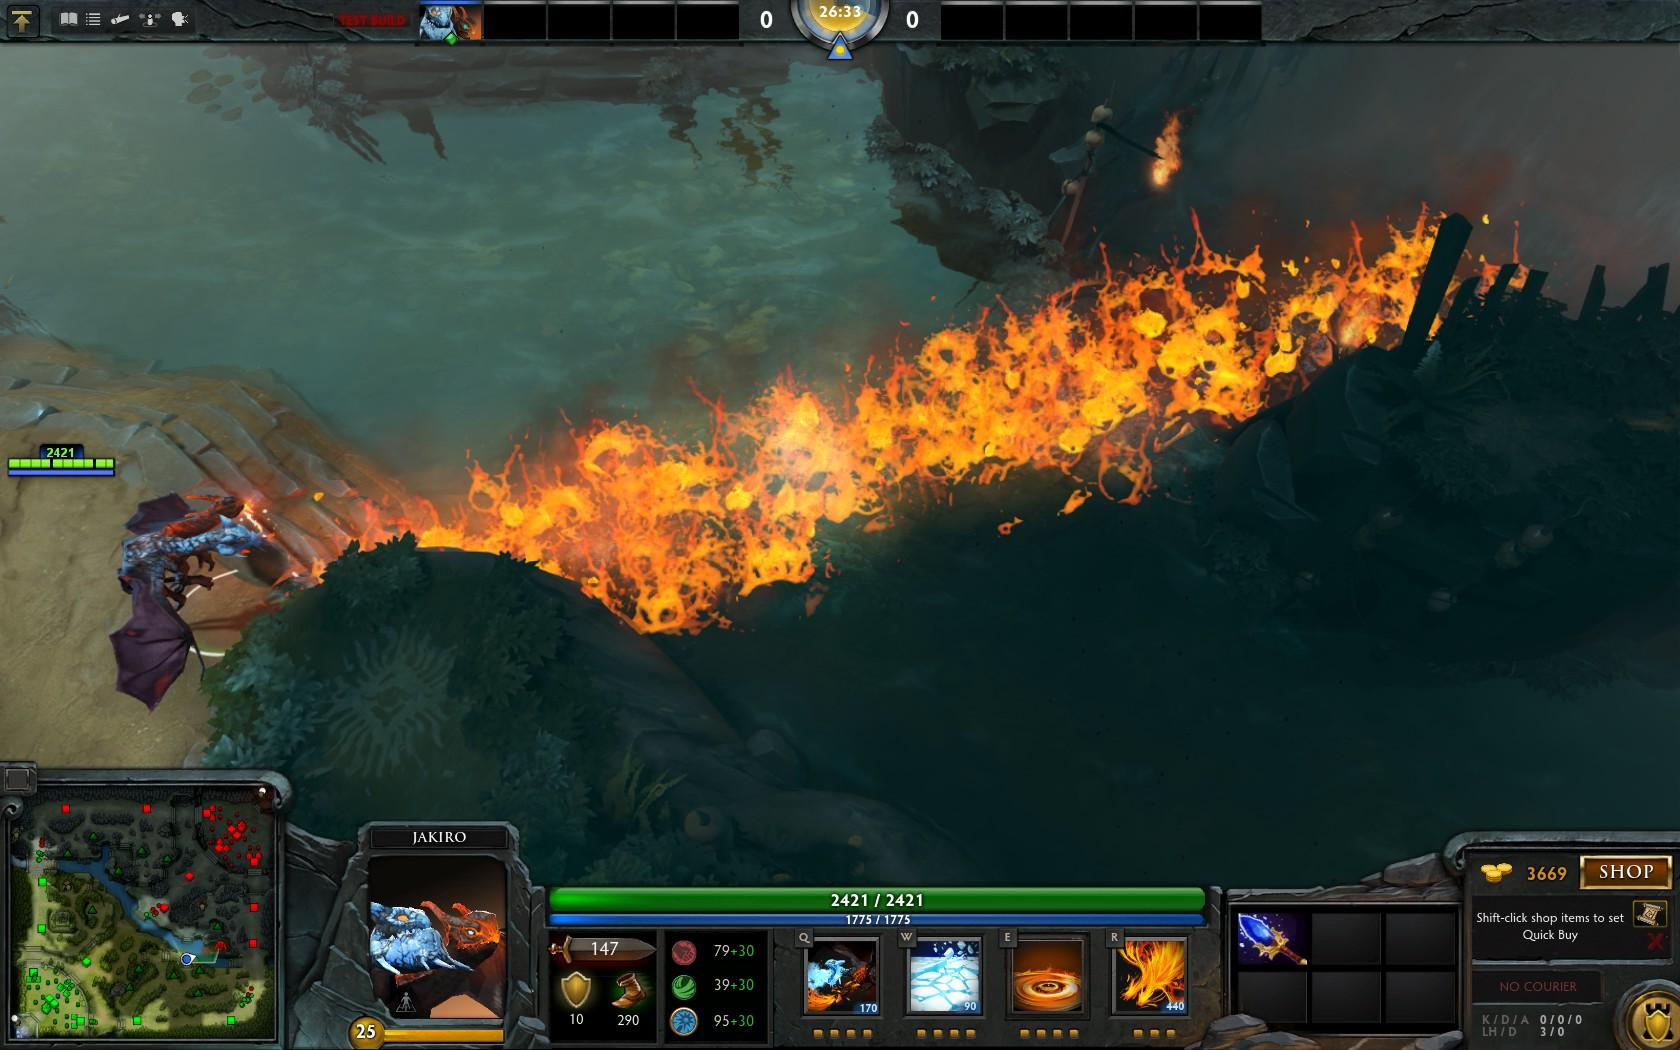 Top 10 'Best Dota 2 Support Heroes' That Absolutely Wreck